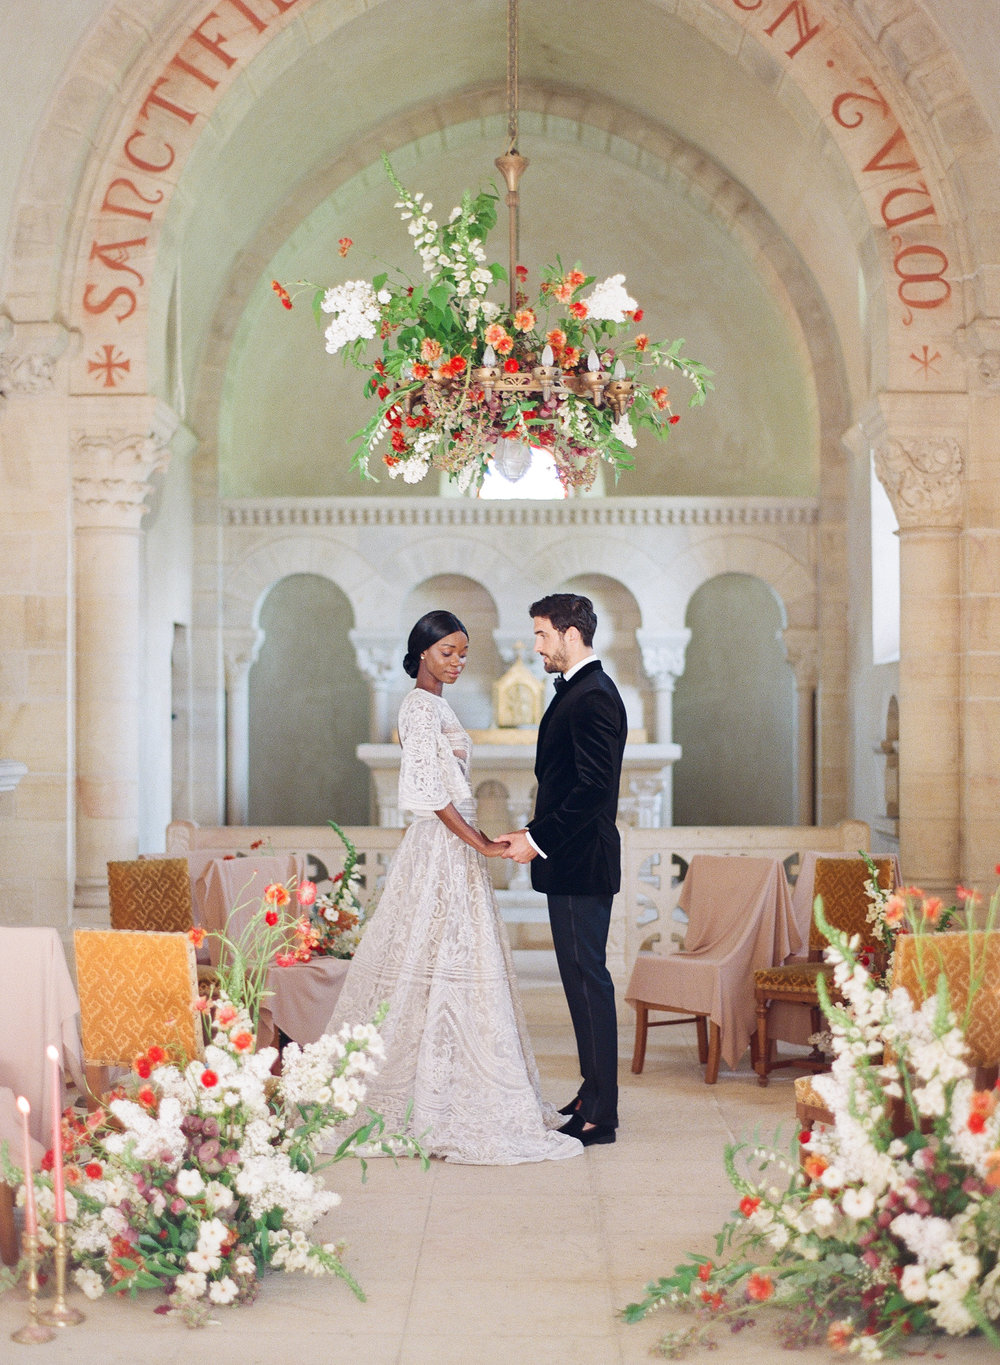 Bride and groom at an intimate wedding ceremony in the chapel of Chateau de Varennes; Sylvie Gil Photography